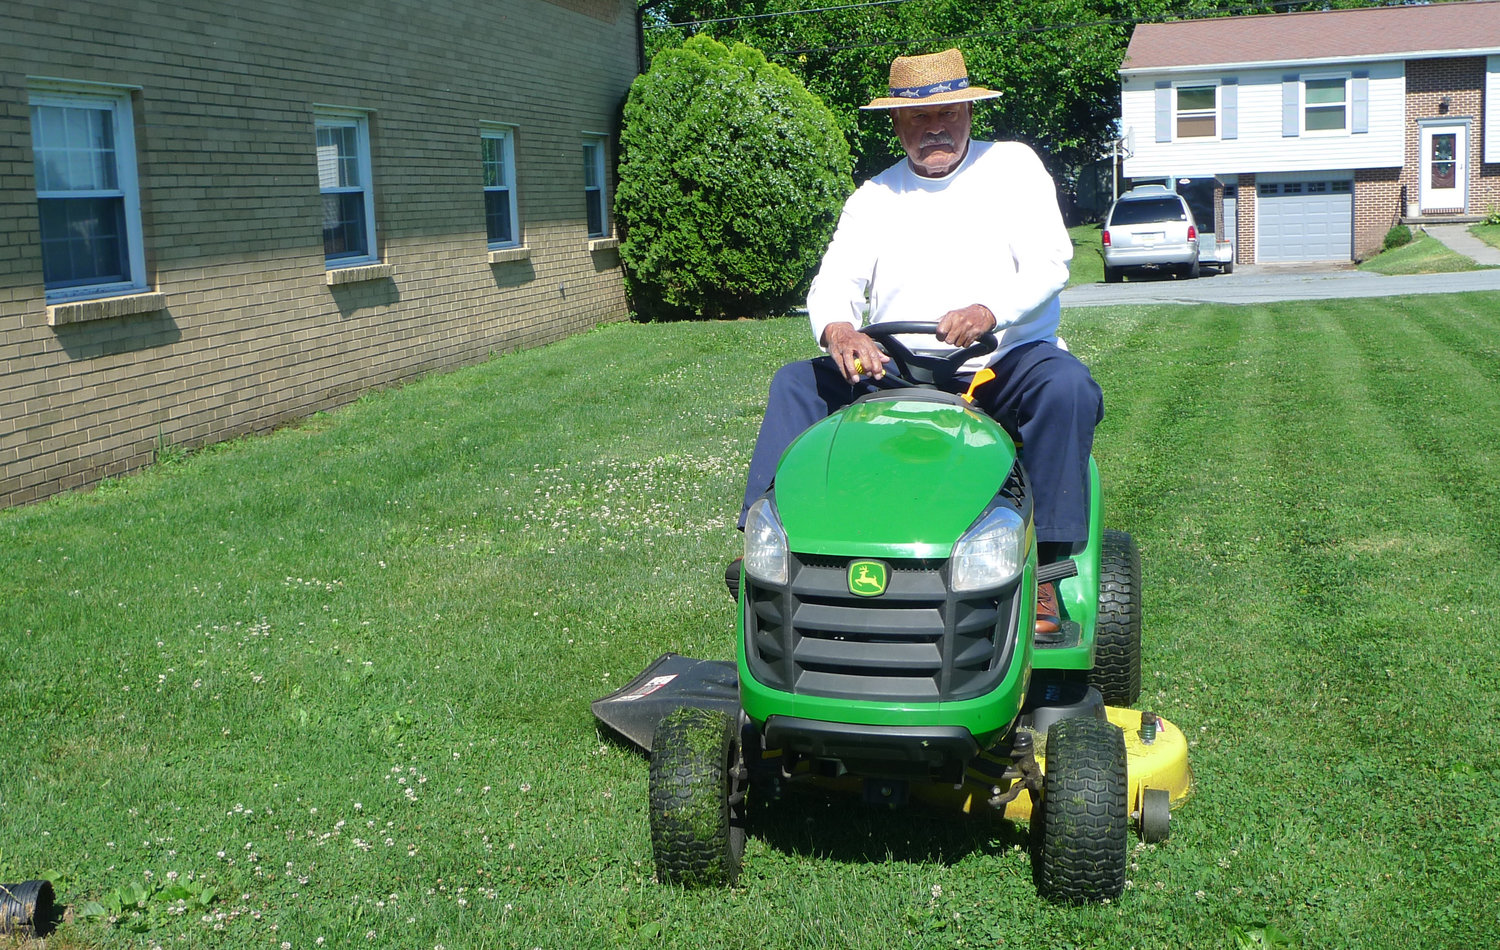 Once a week during the spring and summer, Robert Reid can be found behind the wheel of a tractor mowing the lawn of his church, the Ebenezer African Methodist Episcopal Church on Market Street in Middletown.